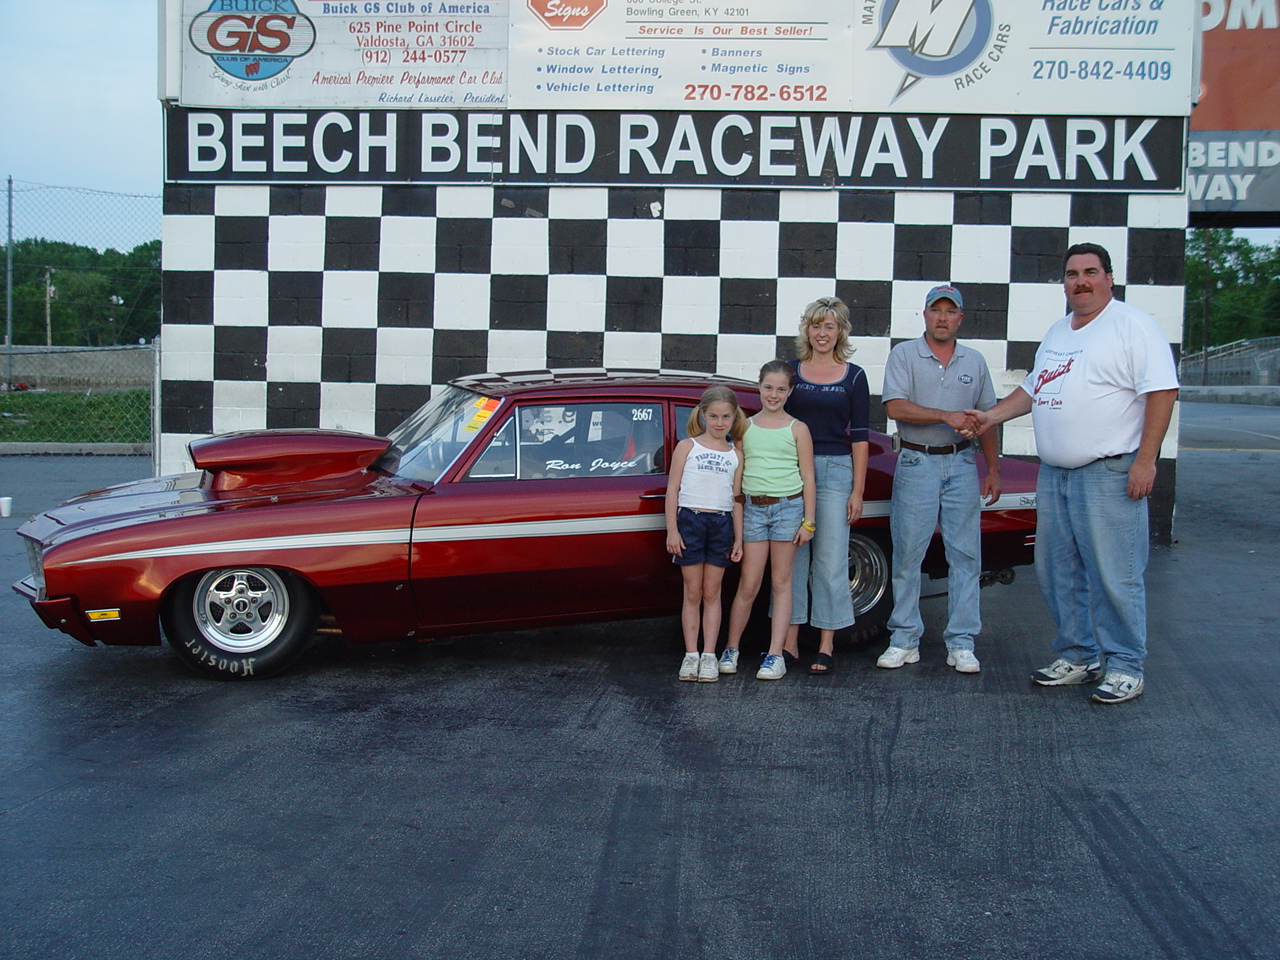 GS NATIONALS CAR SHOW RACE RESULTS May - Toth buick car show